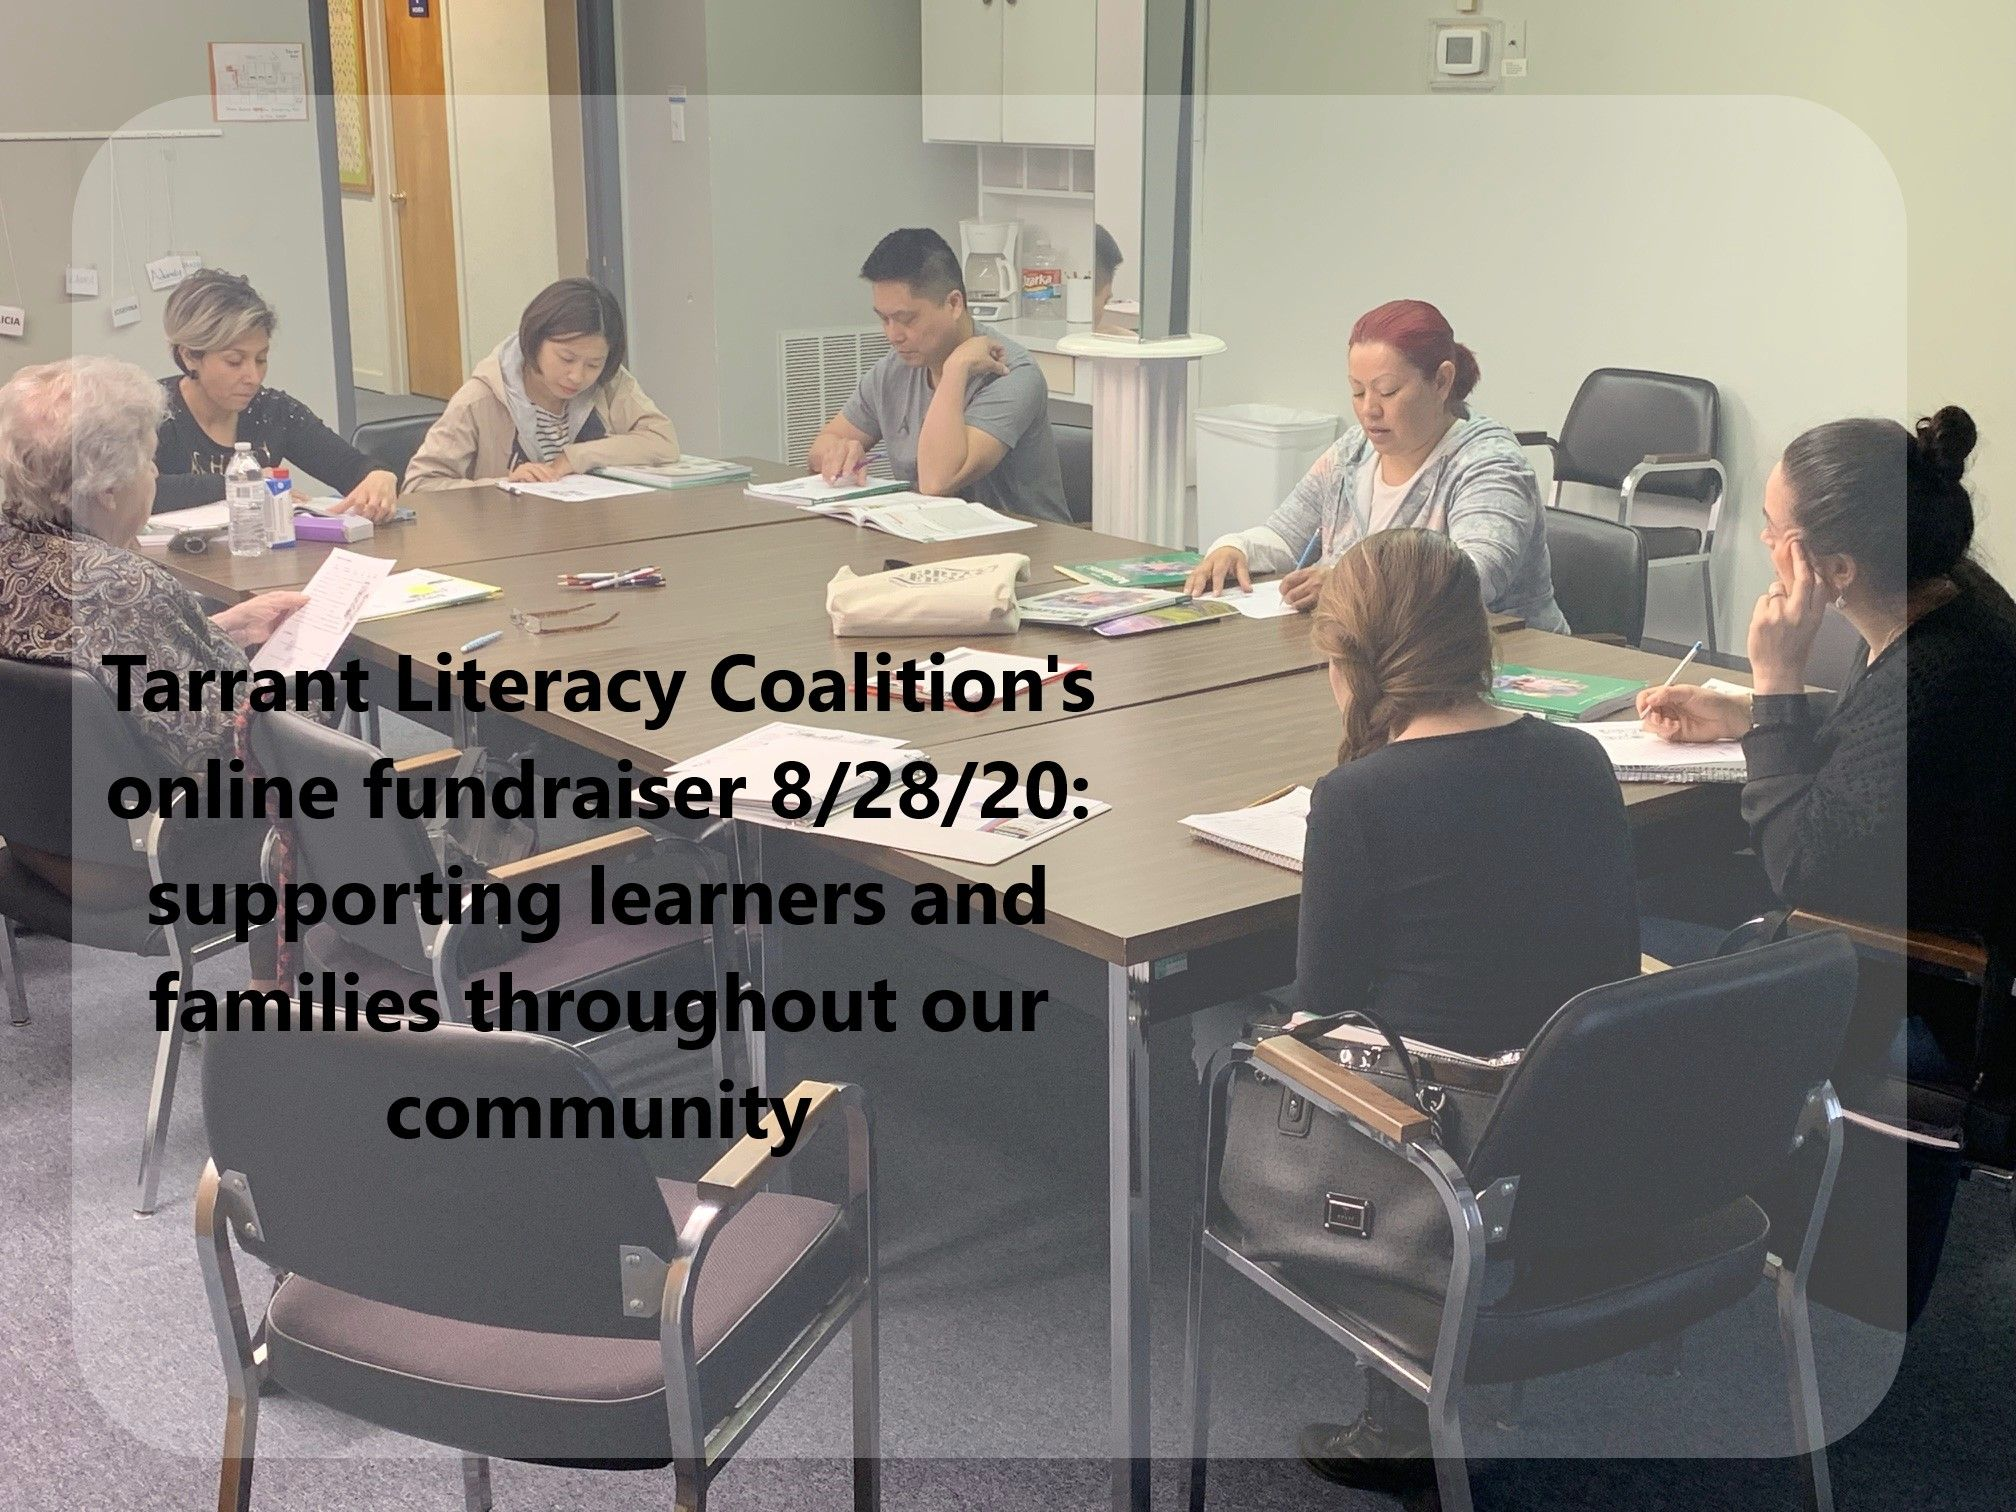 Tarrant Literacy Coalition is holding an online fundraiser to support Tarrant County adult learners and their families!